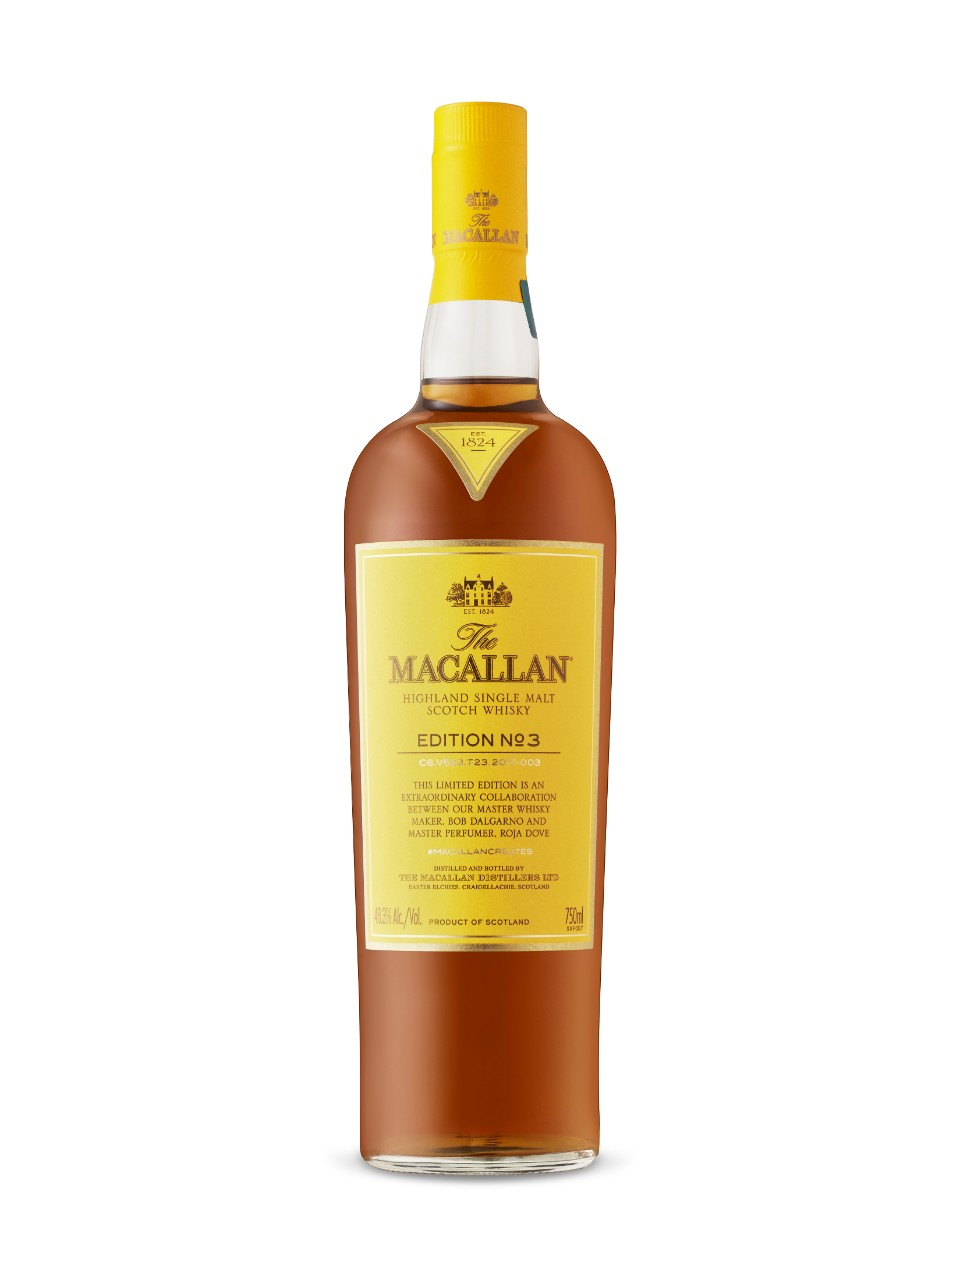 Image for Macallan Edition No. 3 Highland Single Malt Scotch Whisky from LCBO